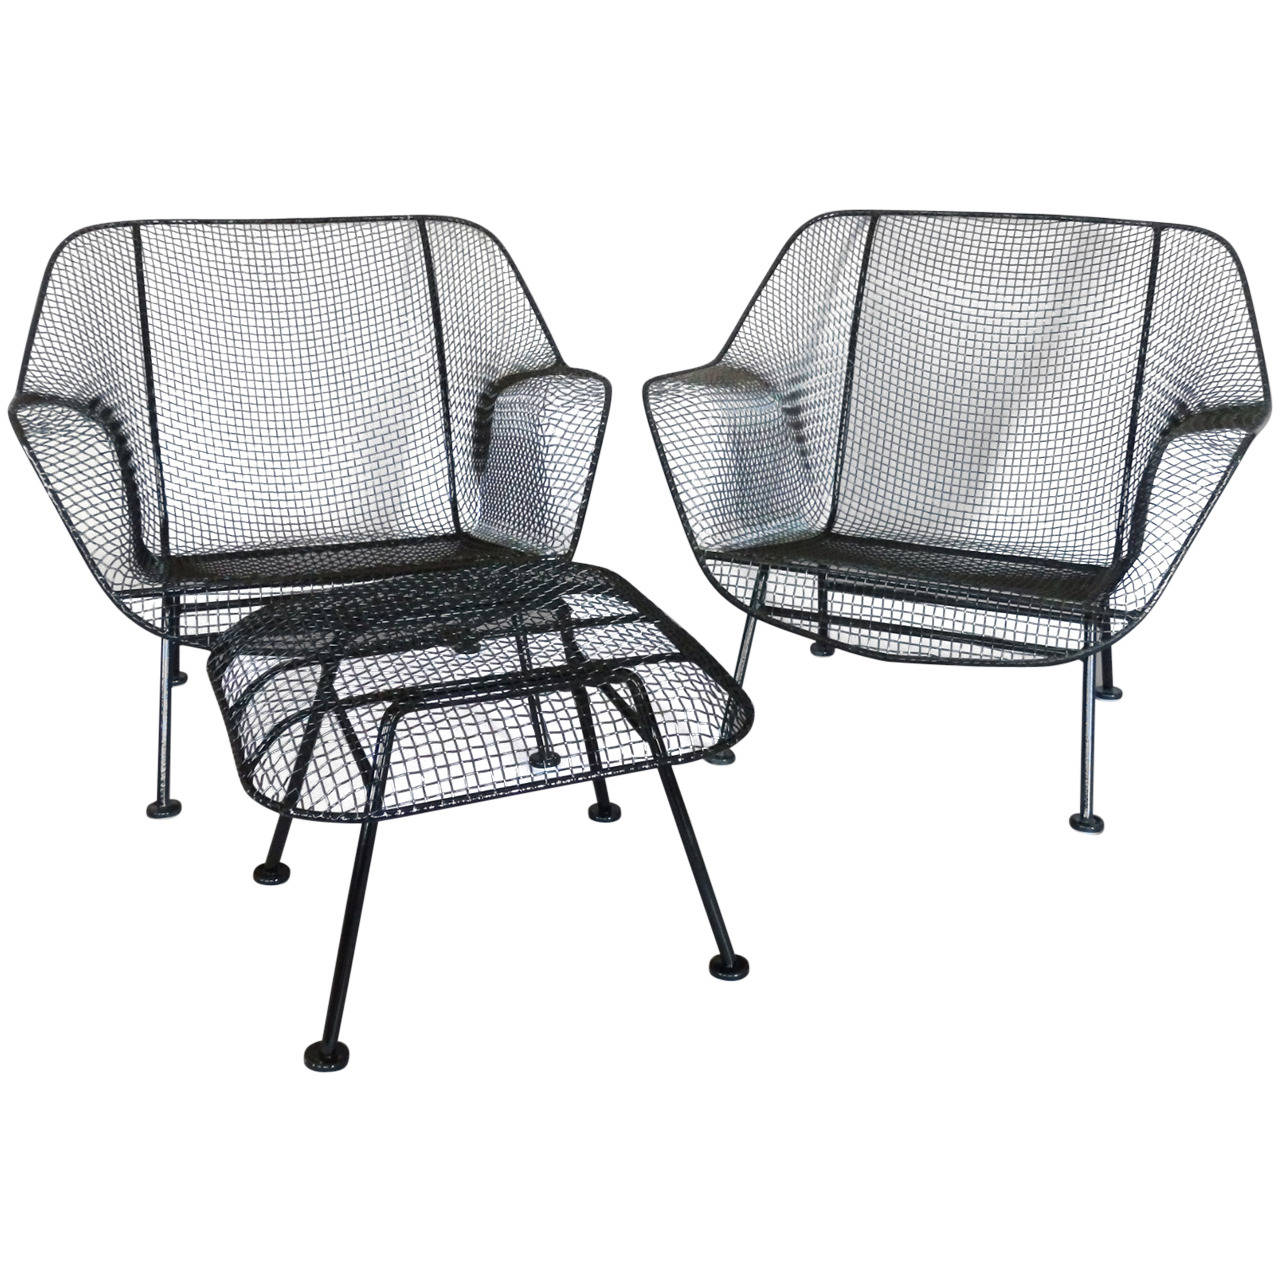 Mesh Patio Chairs Pair Of Woodard Wrought Iron With Mesh Lounge Chairs At